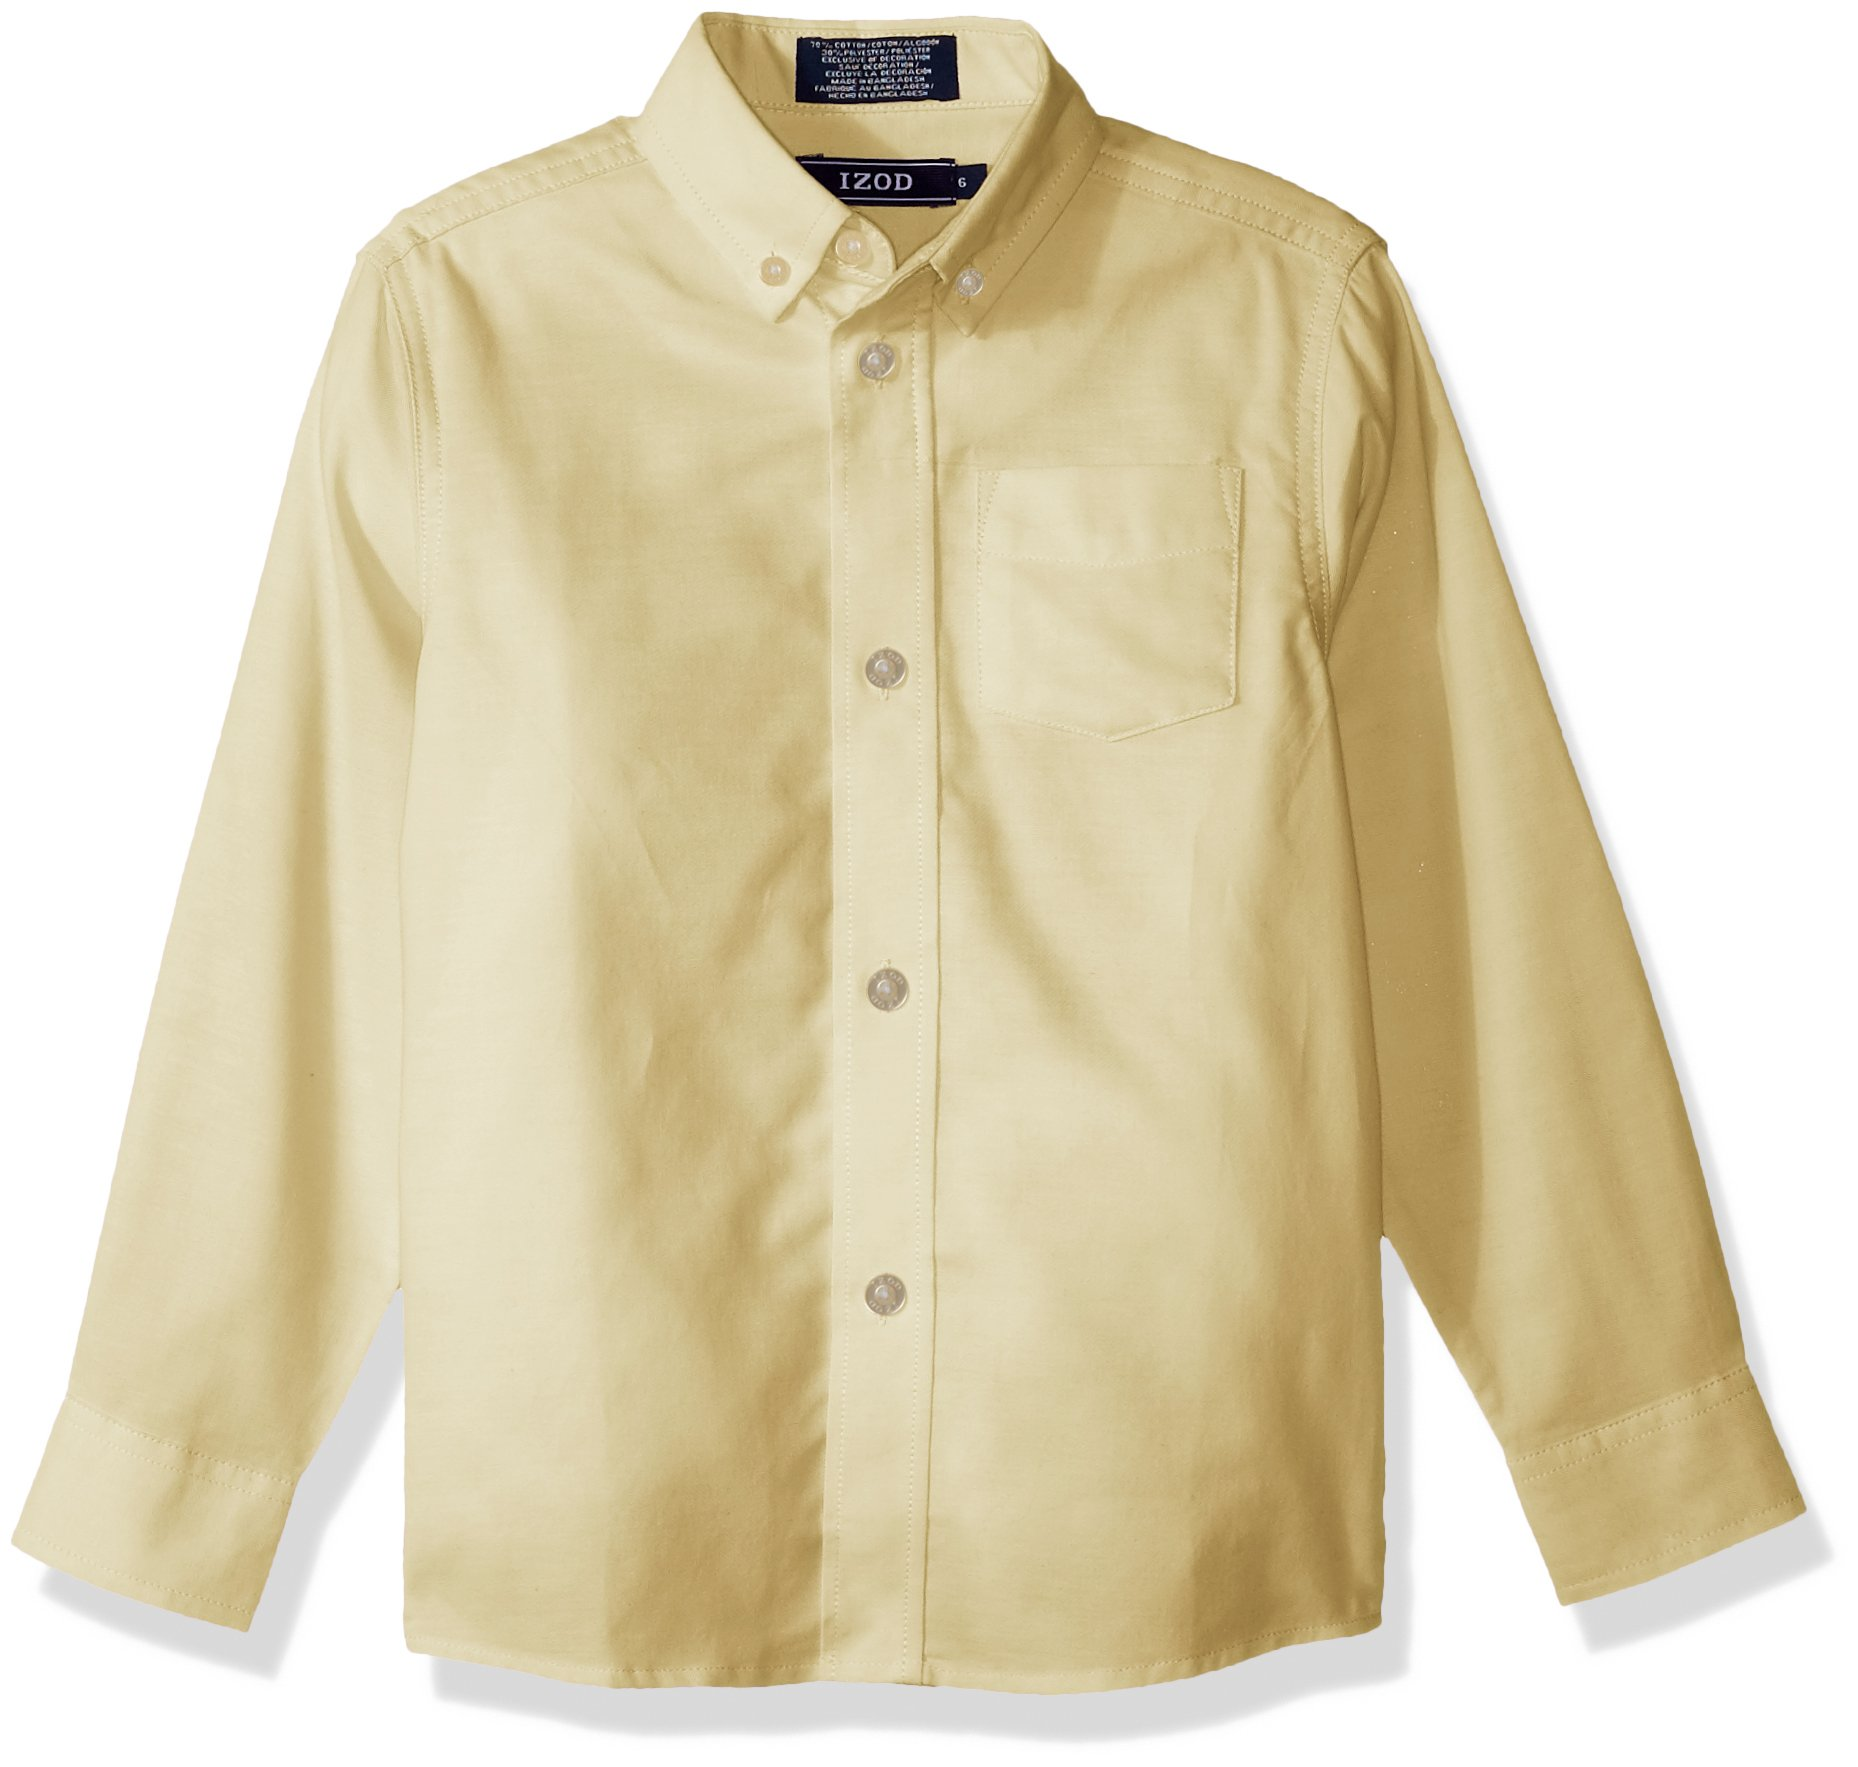 Izod boys Long Sleeve Solid Button-Down Oxford Shirt, Yellow, 5